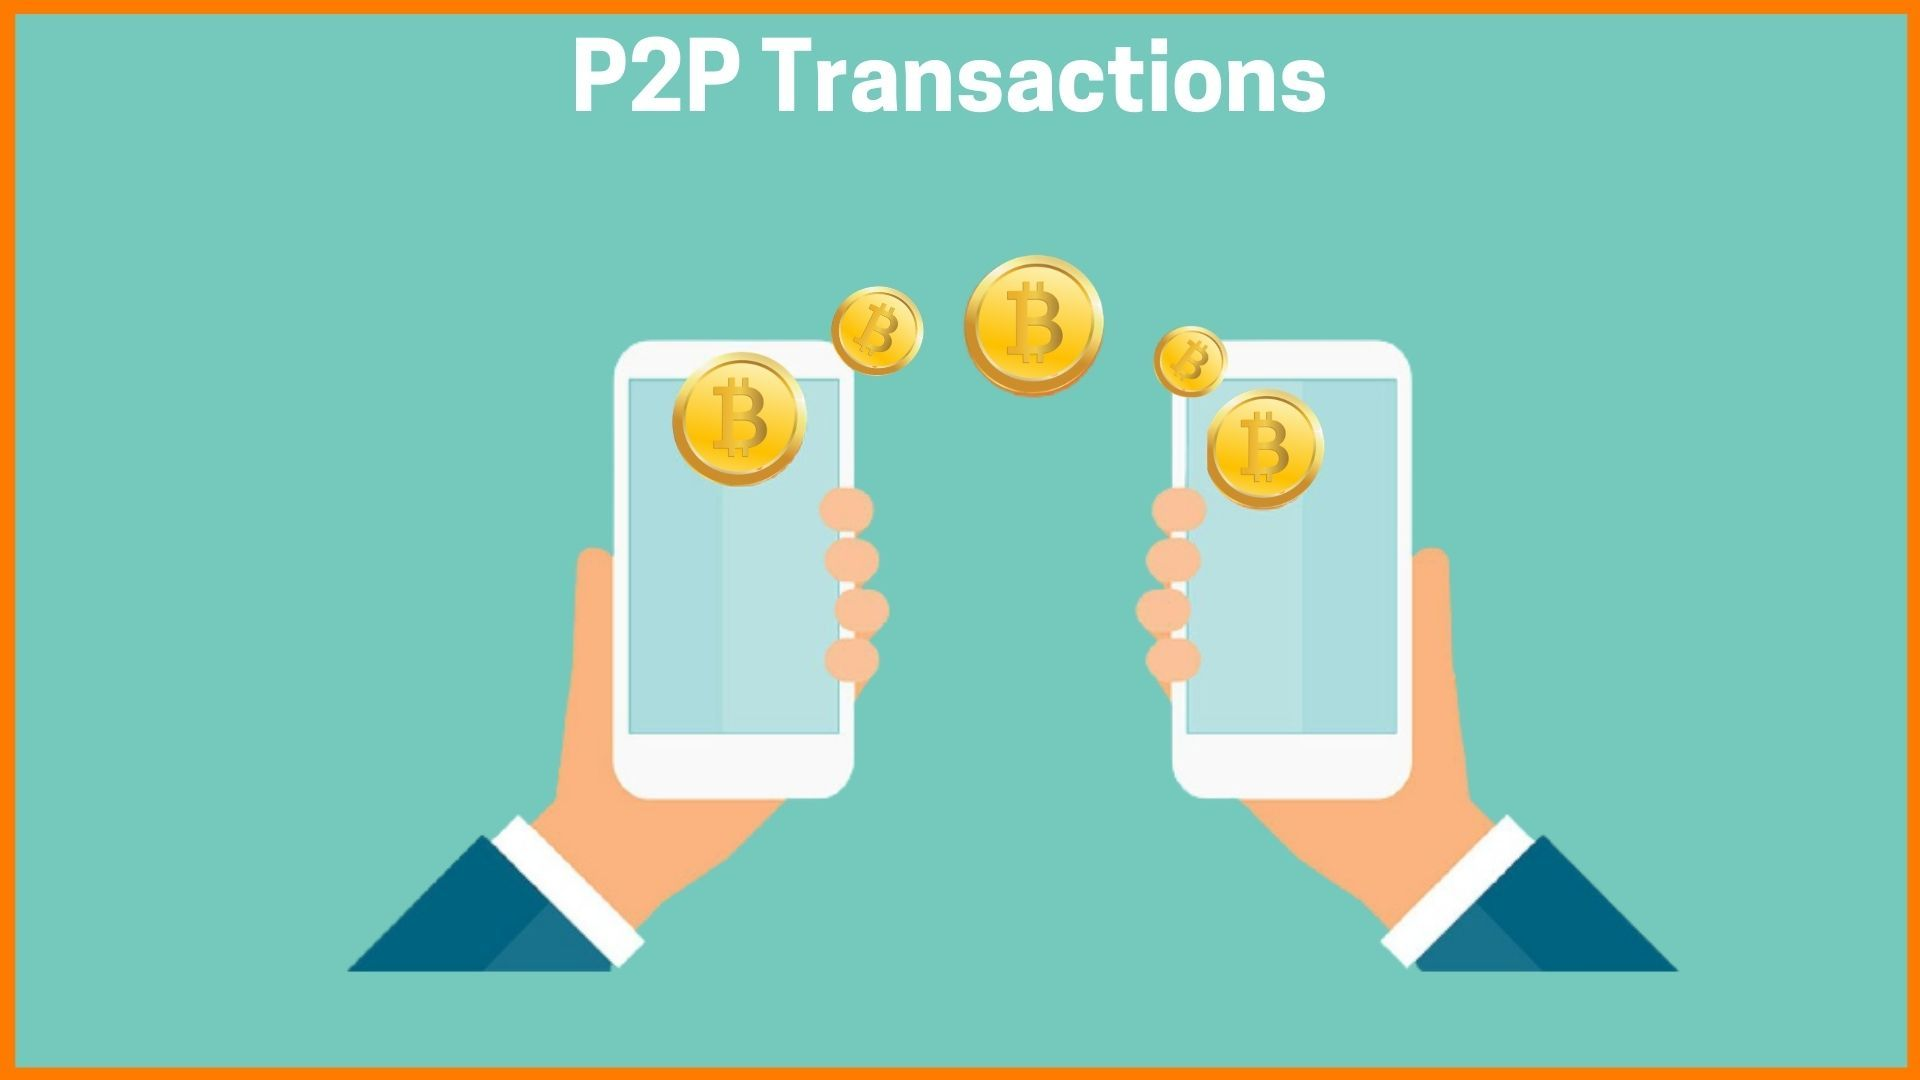 Person to Person Transaction